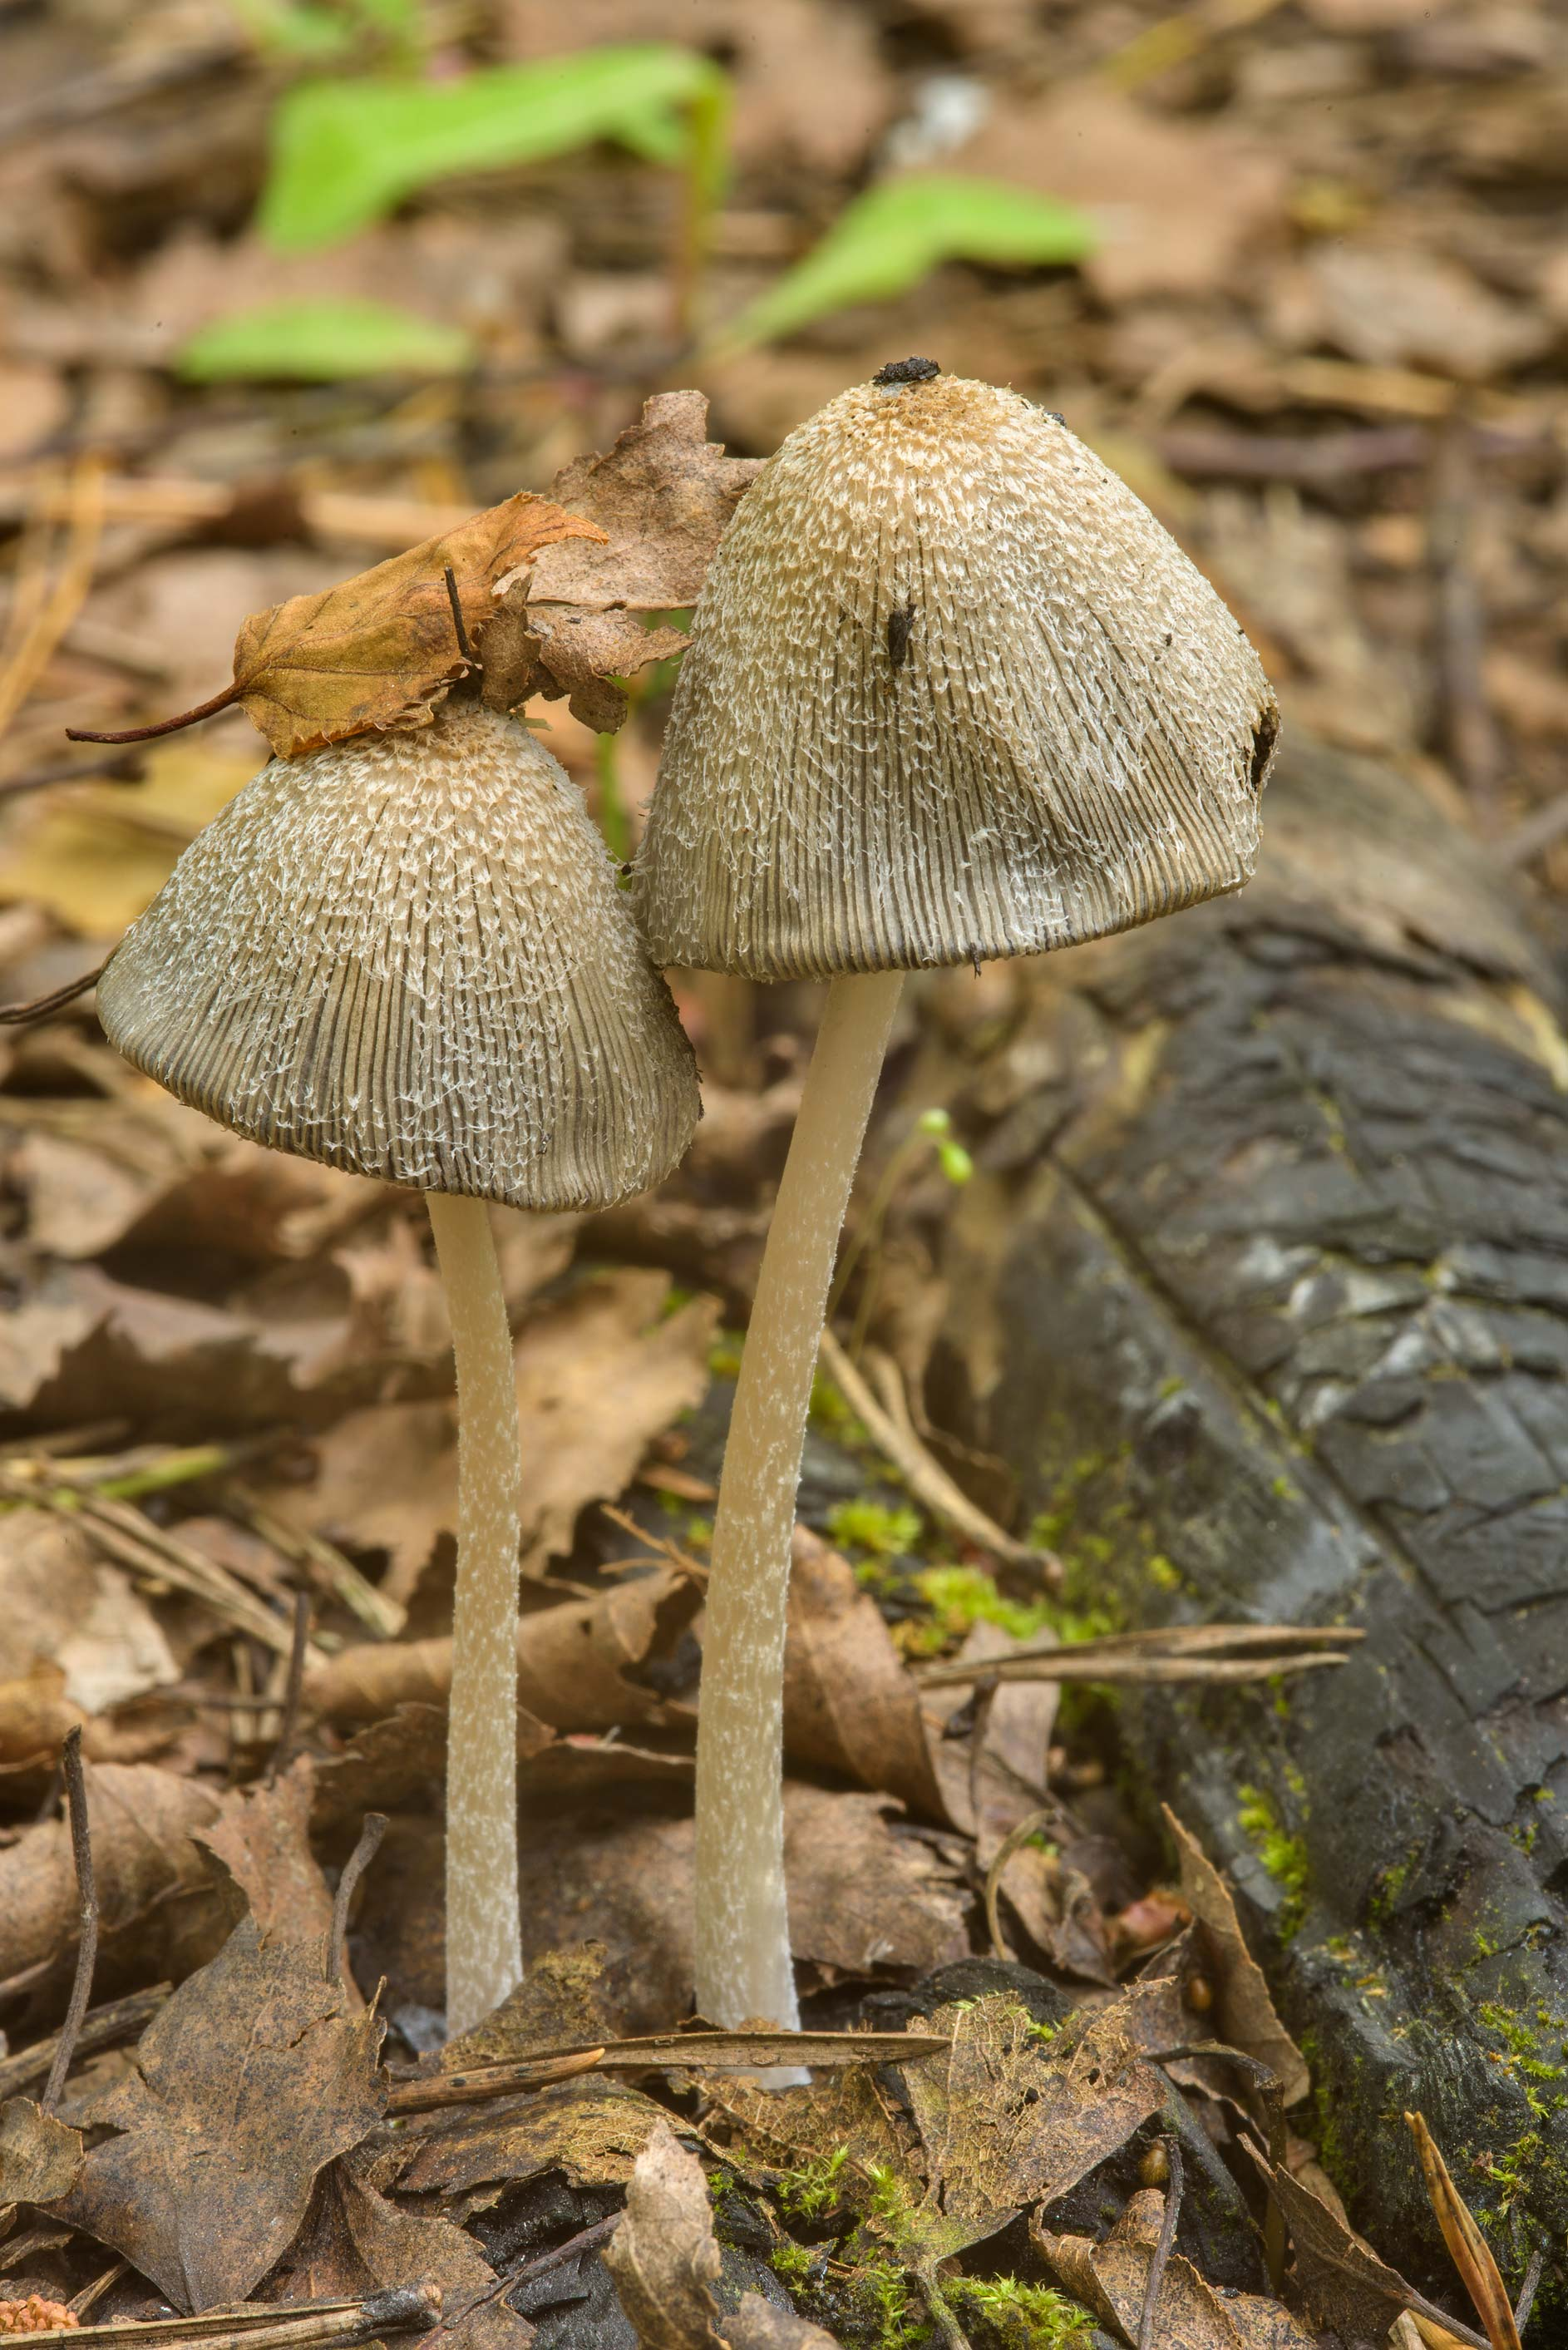 Inkcap mushroom Coprinopsis lagopides on an old...Sosnovka Park. St.Petersburg, Russia